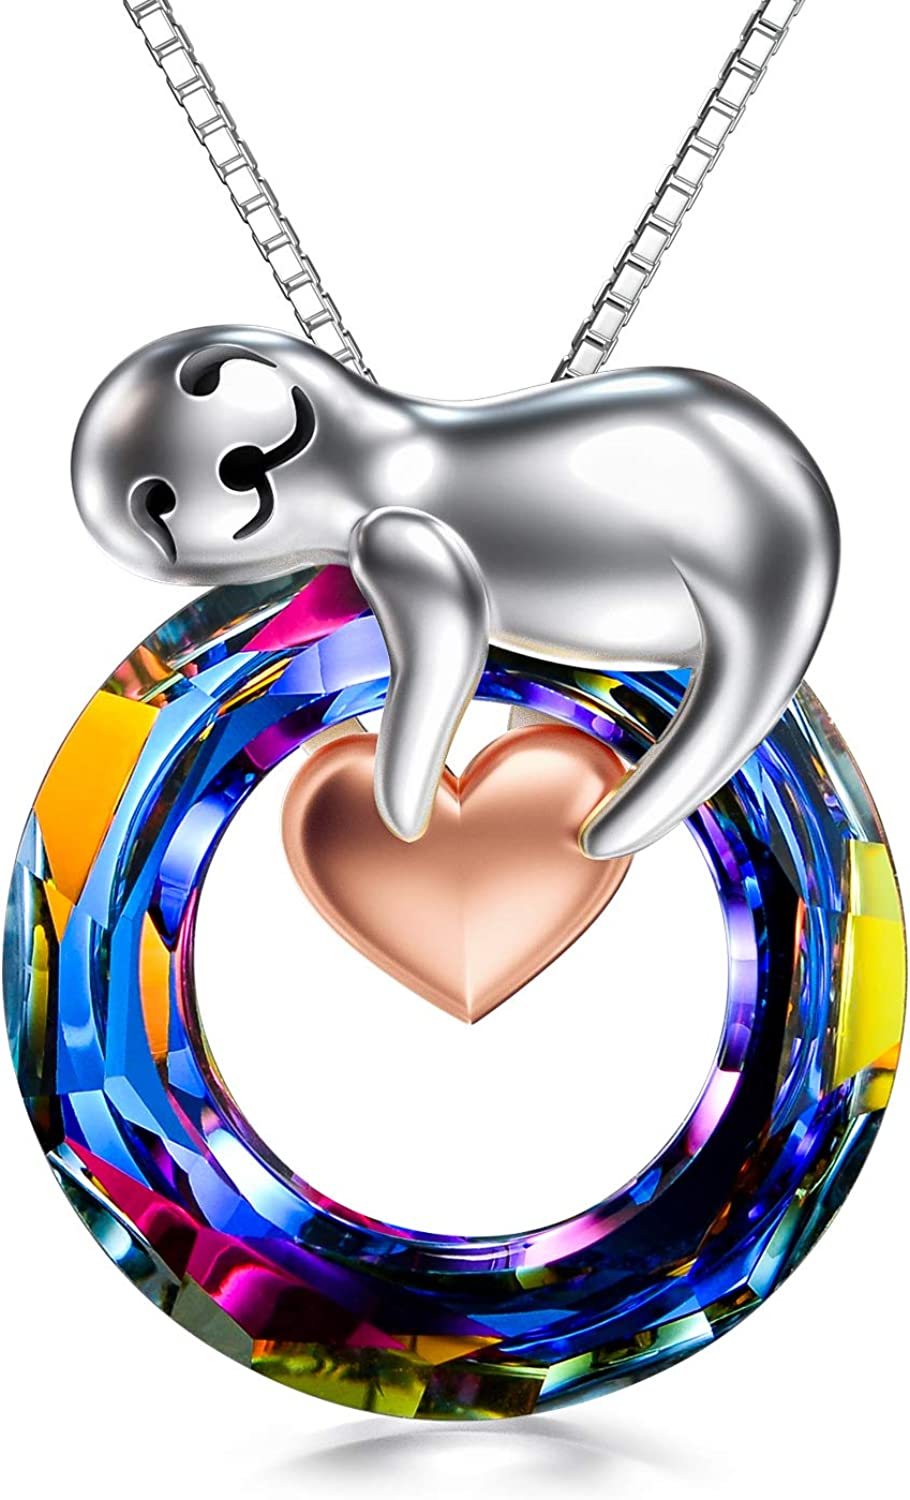 TOUPOP Sale special price Sloth Gifts for Women Pendant Silver Sterling s925 service